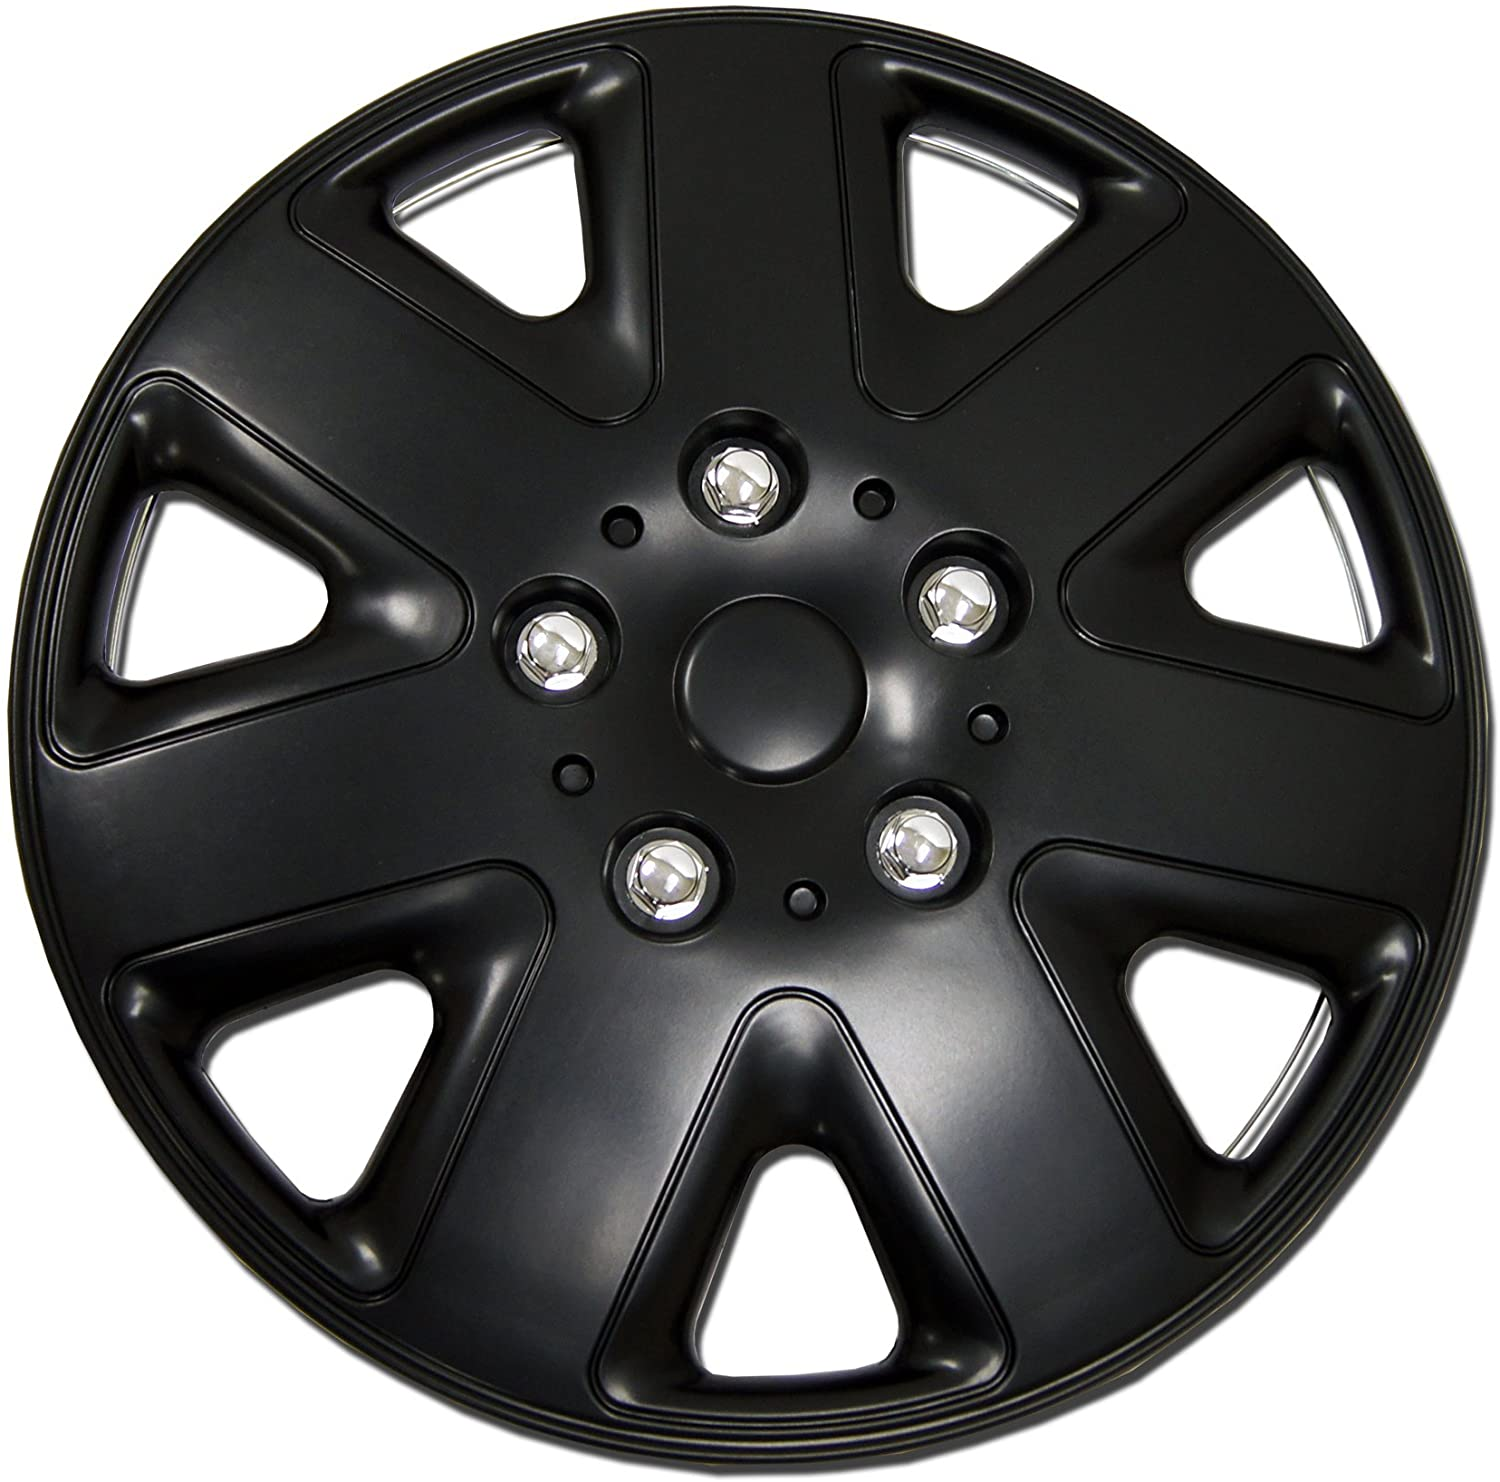 Tuningpros WC1P-16-1026-B - Pack of 1 Hubcap (1 Piece) - 16-Inches Style Snap-On (Pop-On) Type Matte Black Wheel Covers Hub-caps